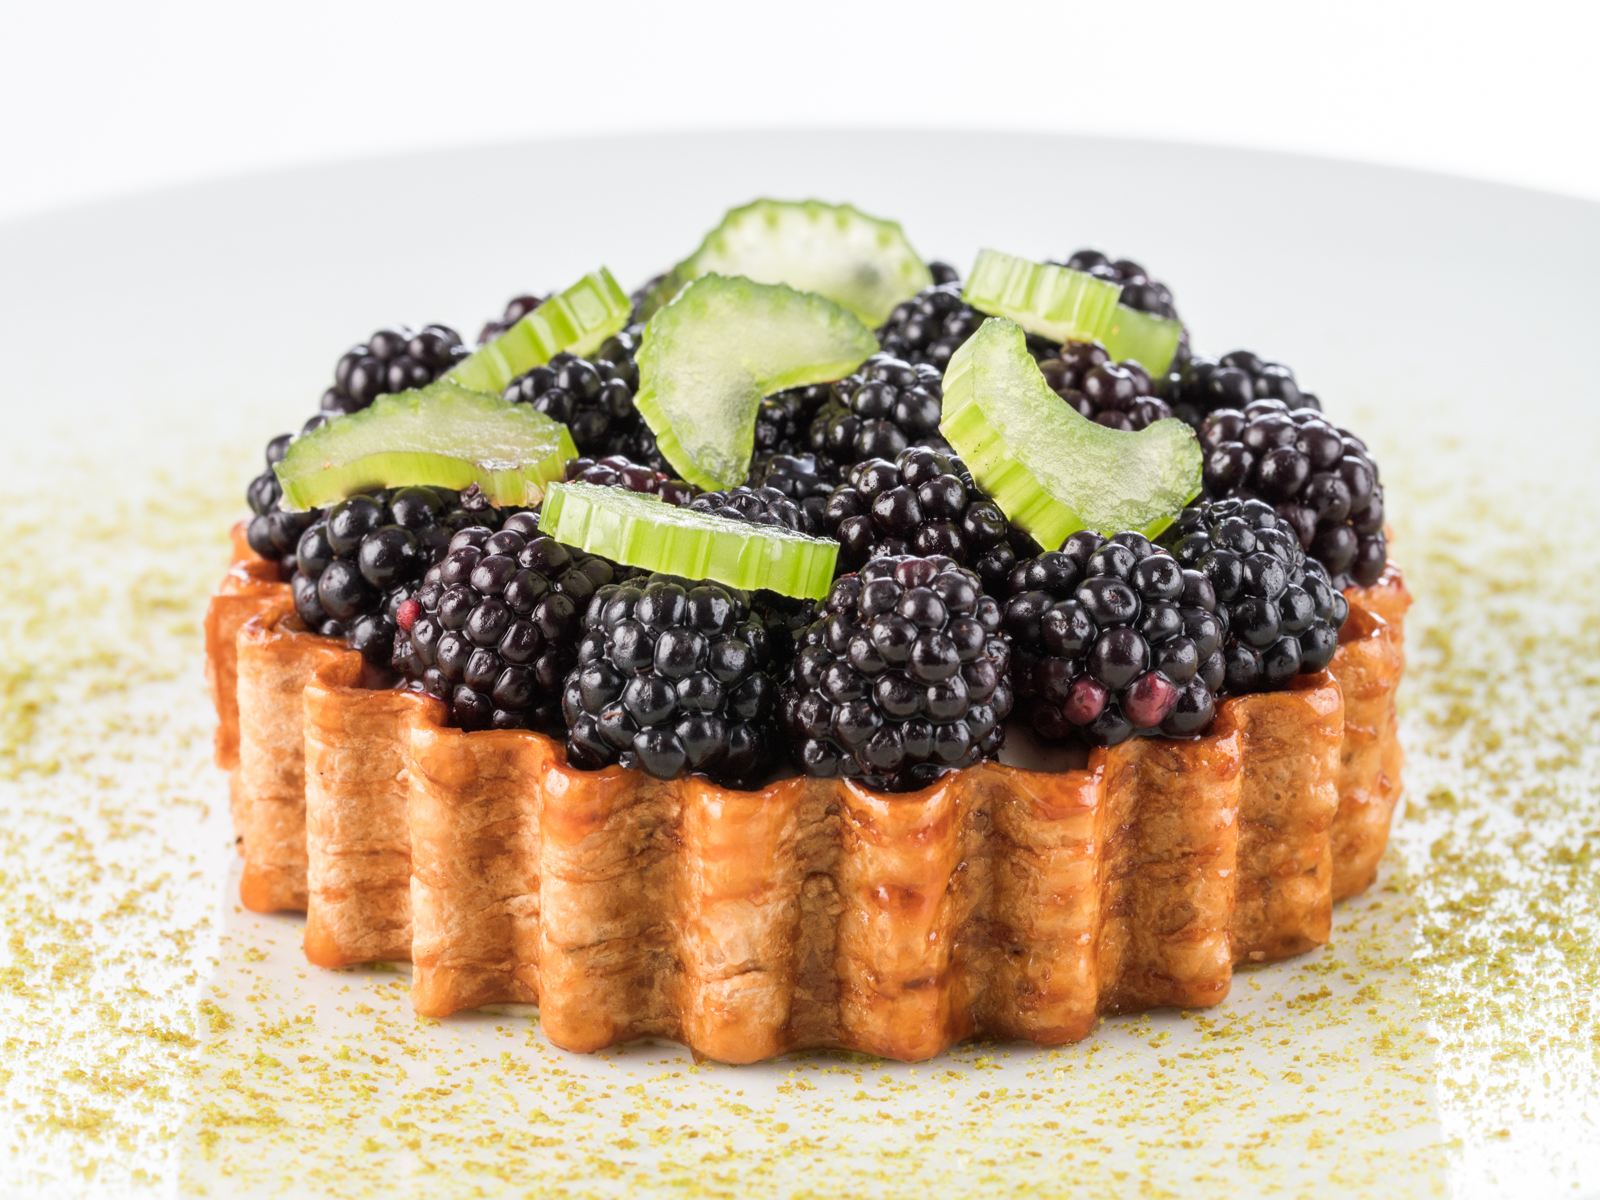 Francois Perret Ritz Paris Wild Blackberry Tart with Celery